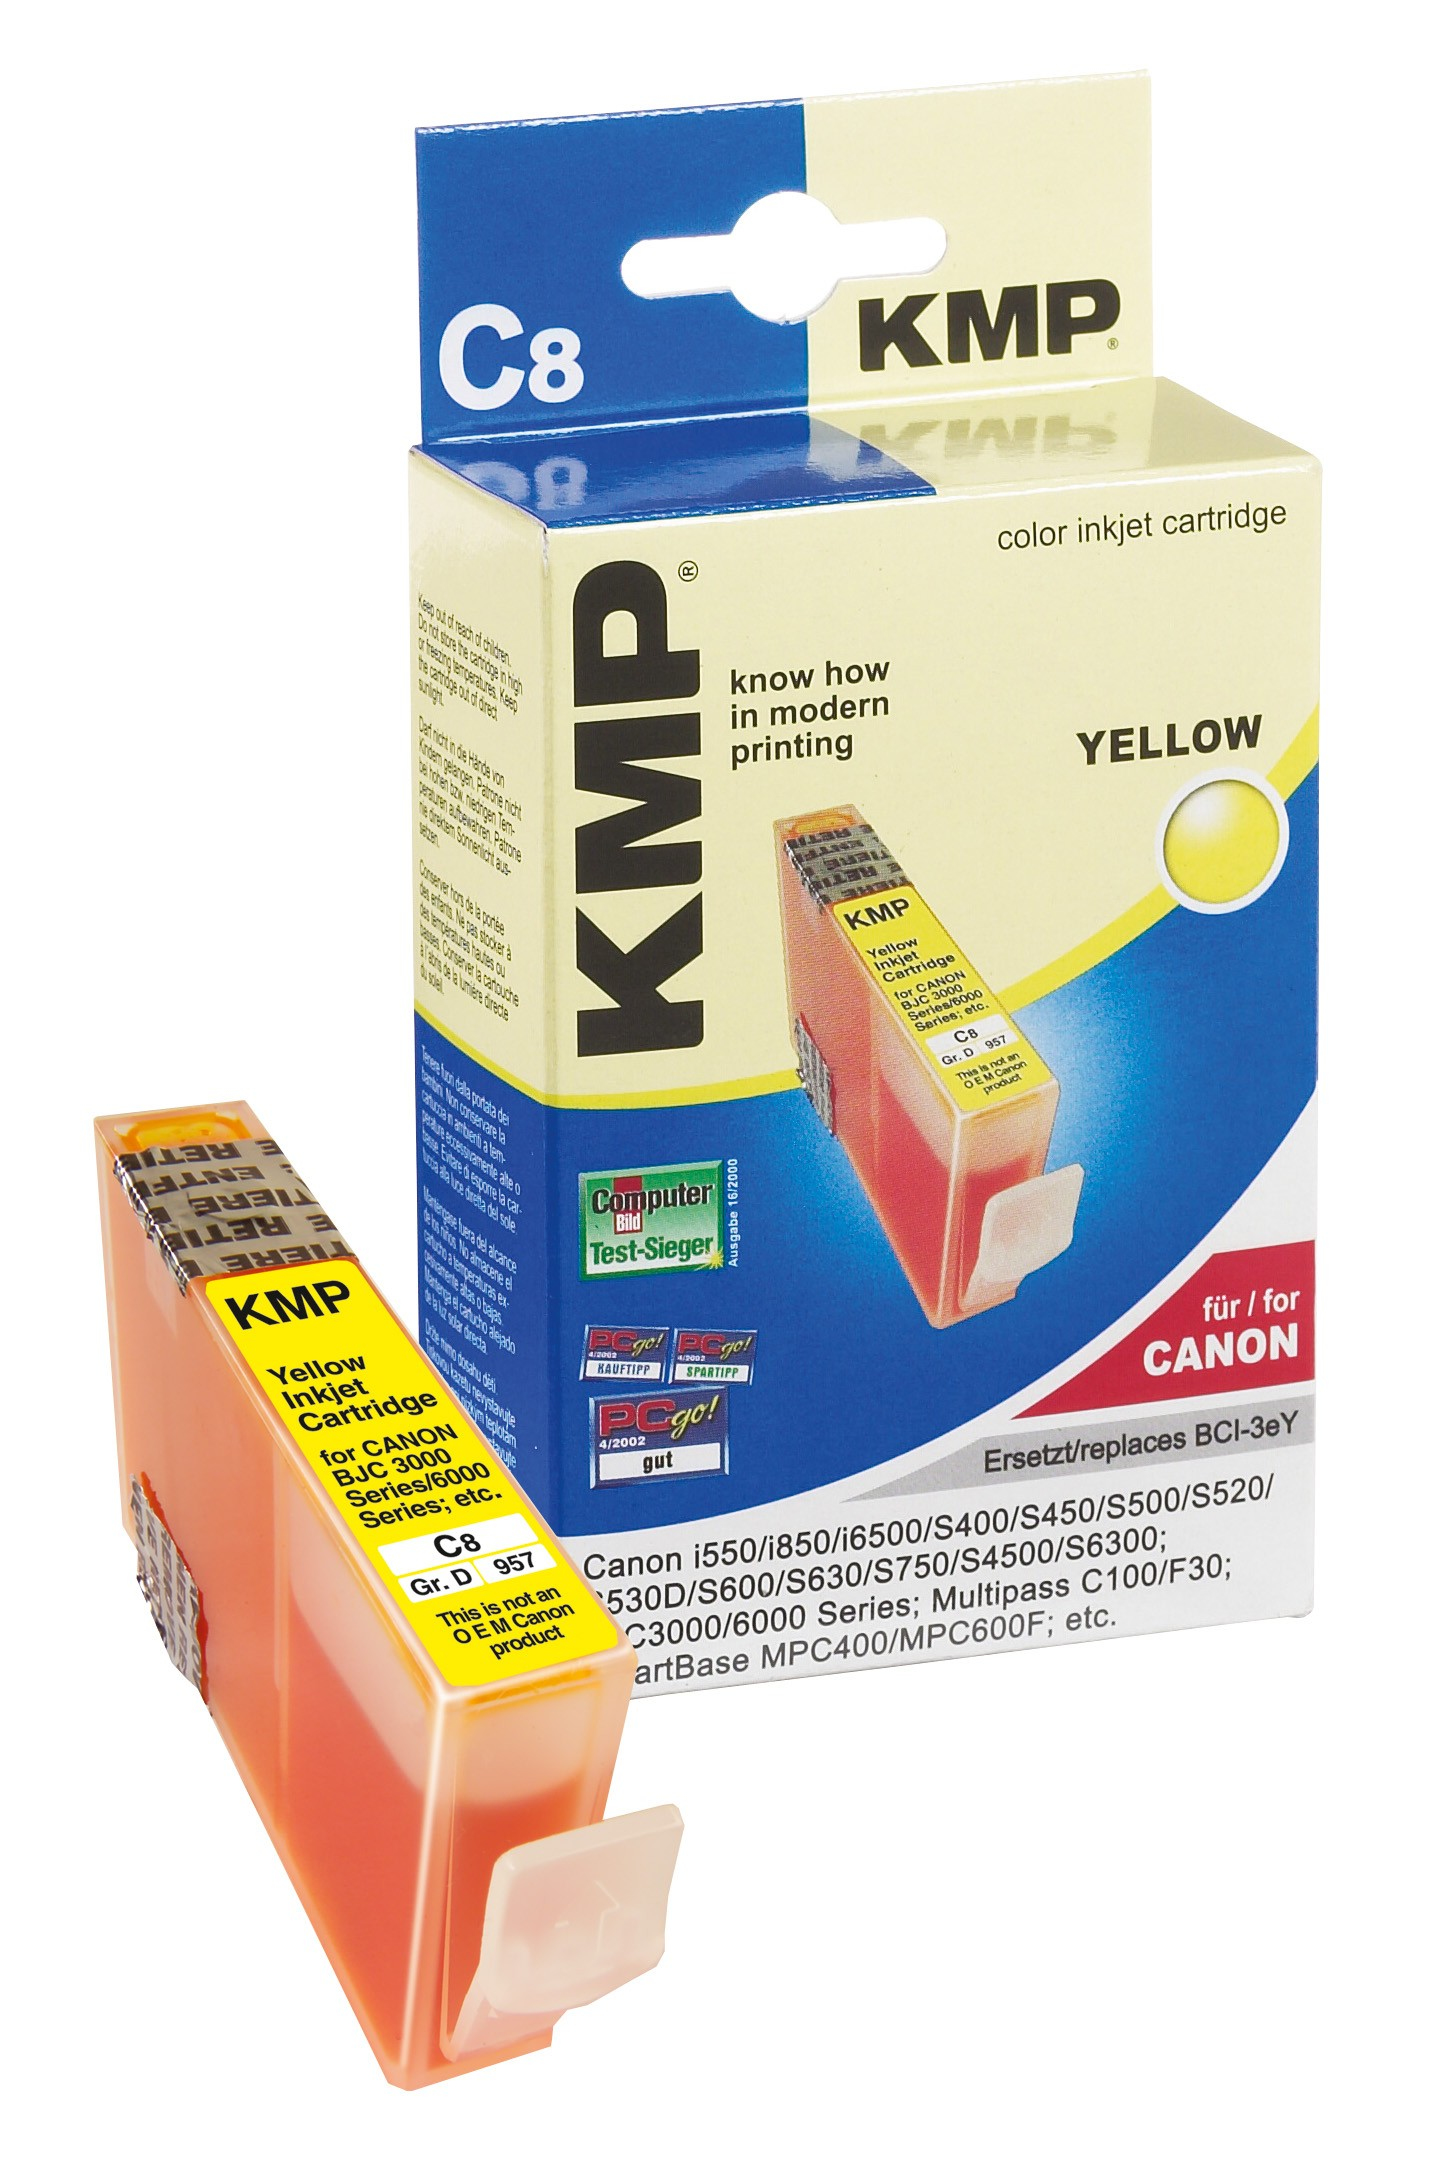 KMP C8 ink cartridge yellow compatible with Canon BCI-3e Y